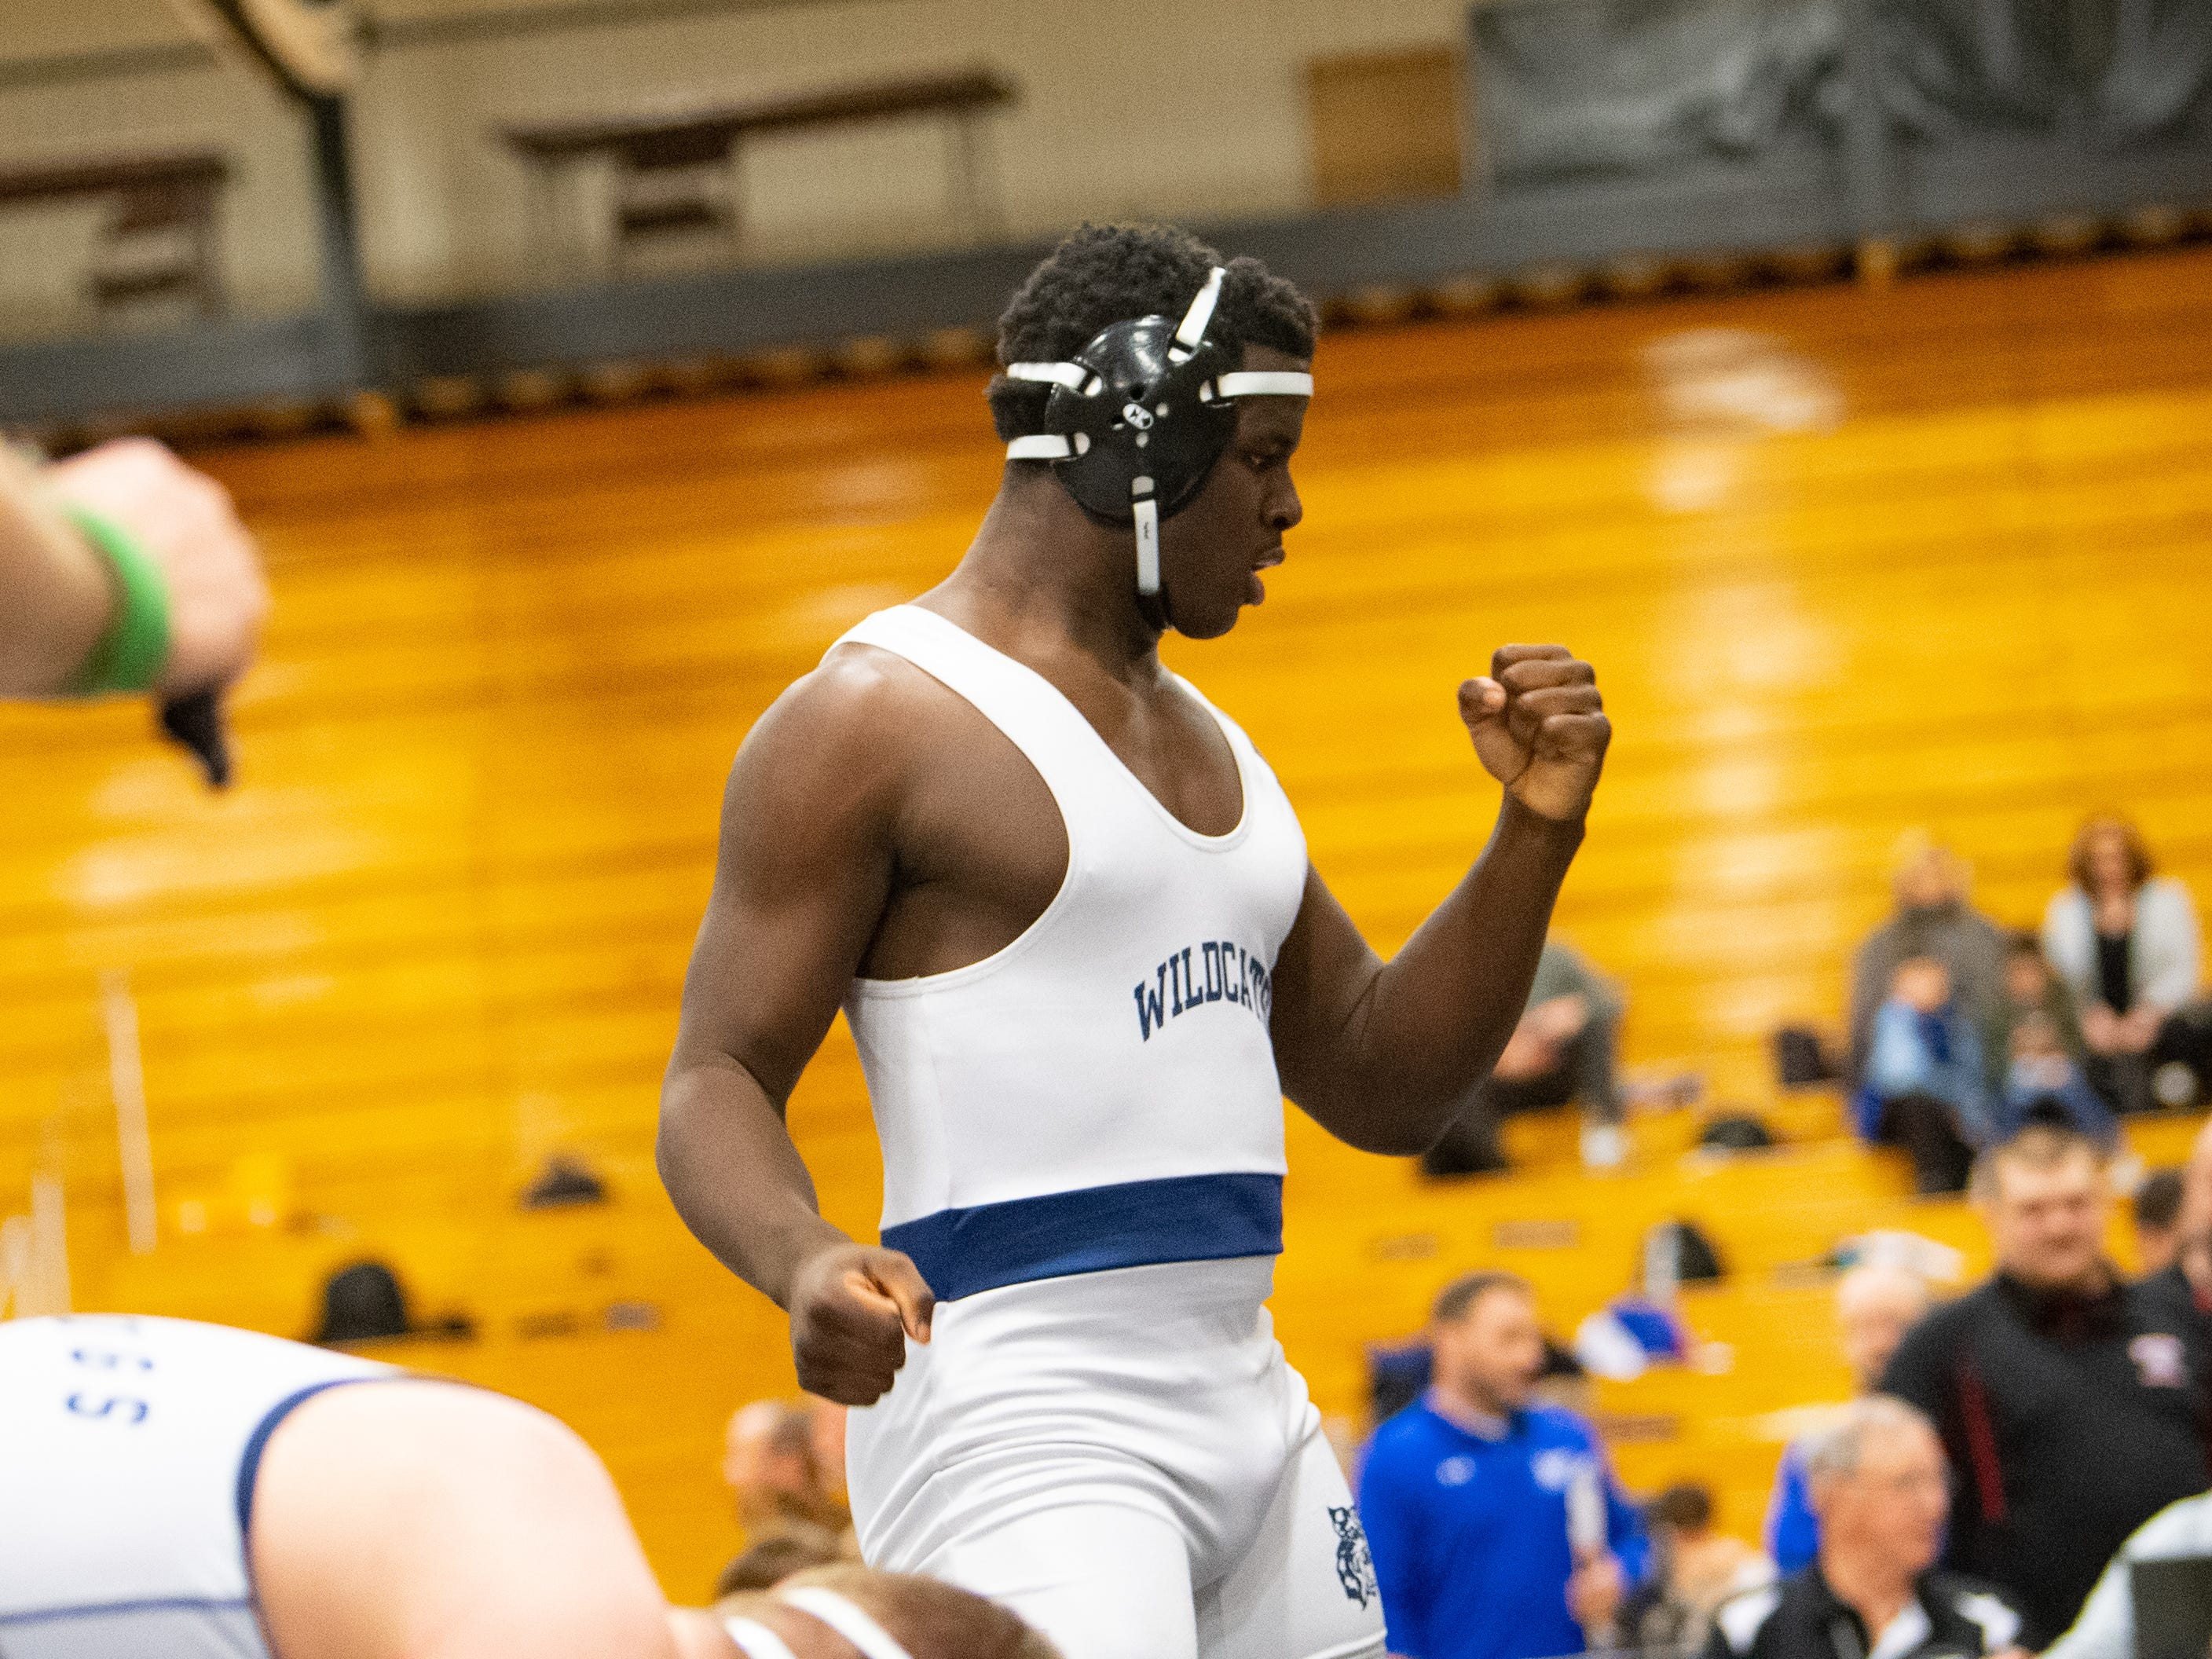 Dallastown's Jamal Brandon celebrates after winning first place in his weight class during the PIAA District 3 Section IV Wrestling Championships, Saturday, February 16, 2019 at South Western High School.